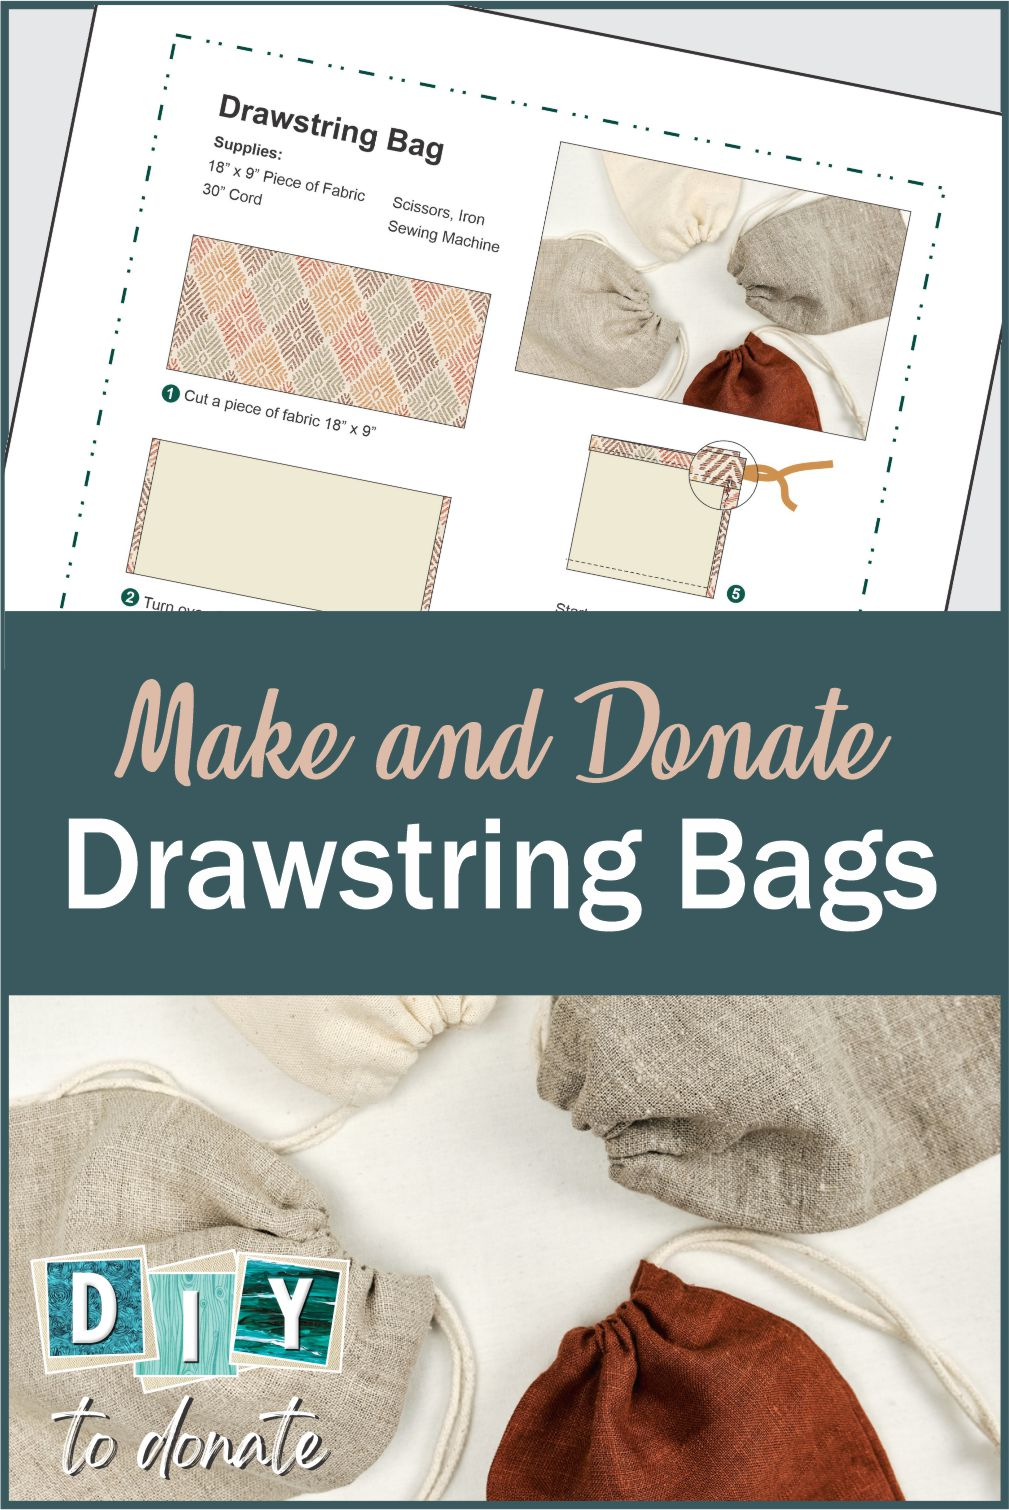 Operation Gratitude includes easy to make drawstring bags to the care packages they send to deployed soldiers. Useful for our troops personal items. #diytodonate #diy #supportourtroops #Militarytroops #military #deployed #carepackages #handmade #soldiers #giveback #service